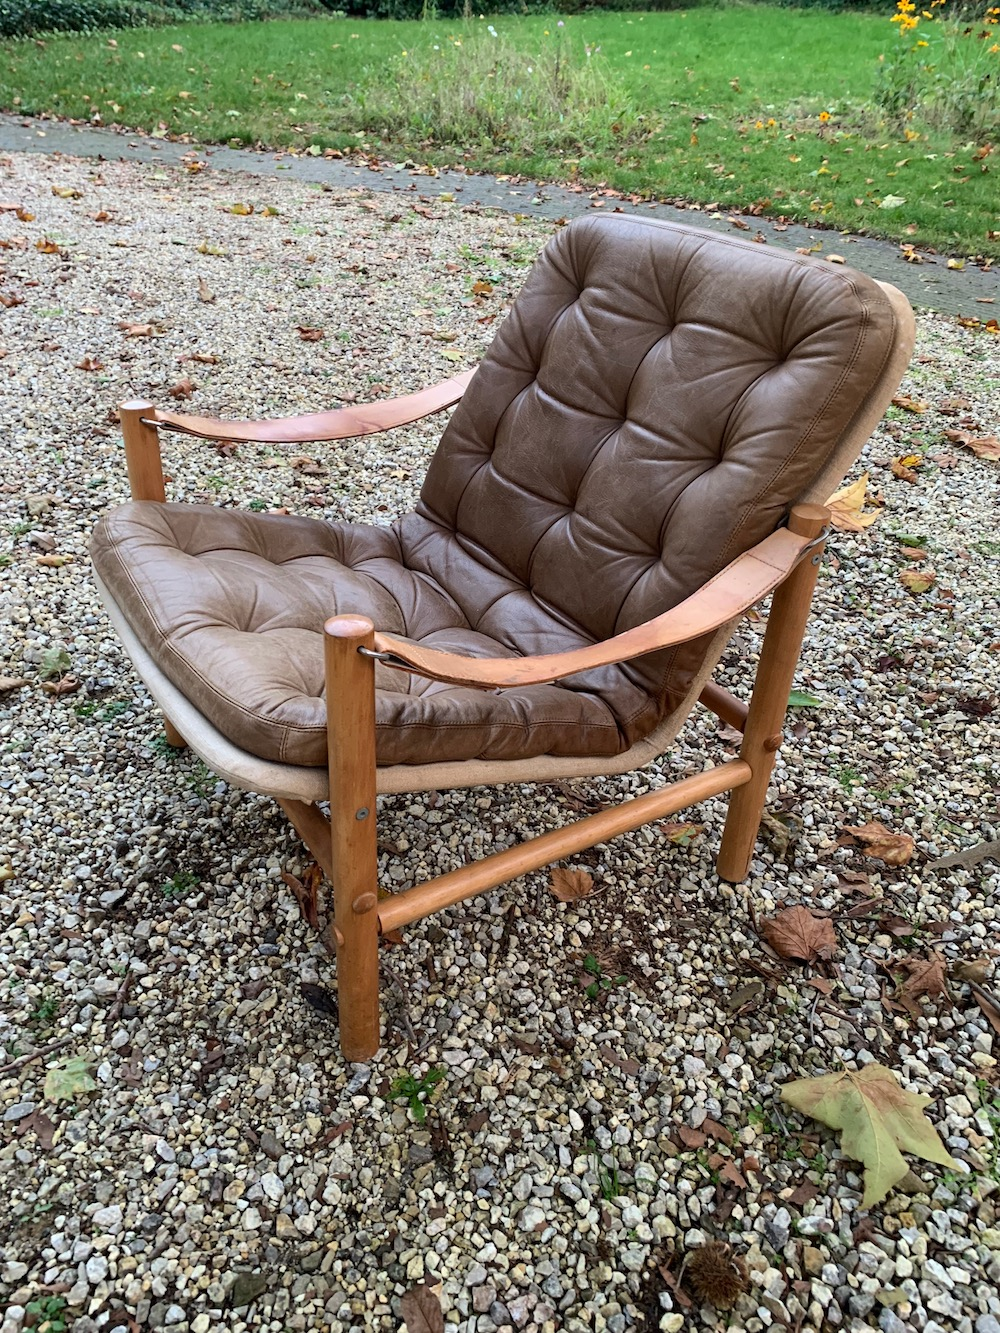 easy chair, vintage chair, lounge chair, Bror Boije, Swedish design, vintage fauteuil, leather chair, safari chair, chaise vintage, fauteuil cuir, vintage design, vintage design chair, interior decoration, living-room chair, reading chair